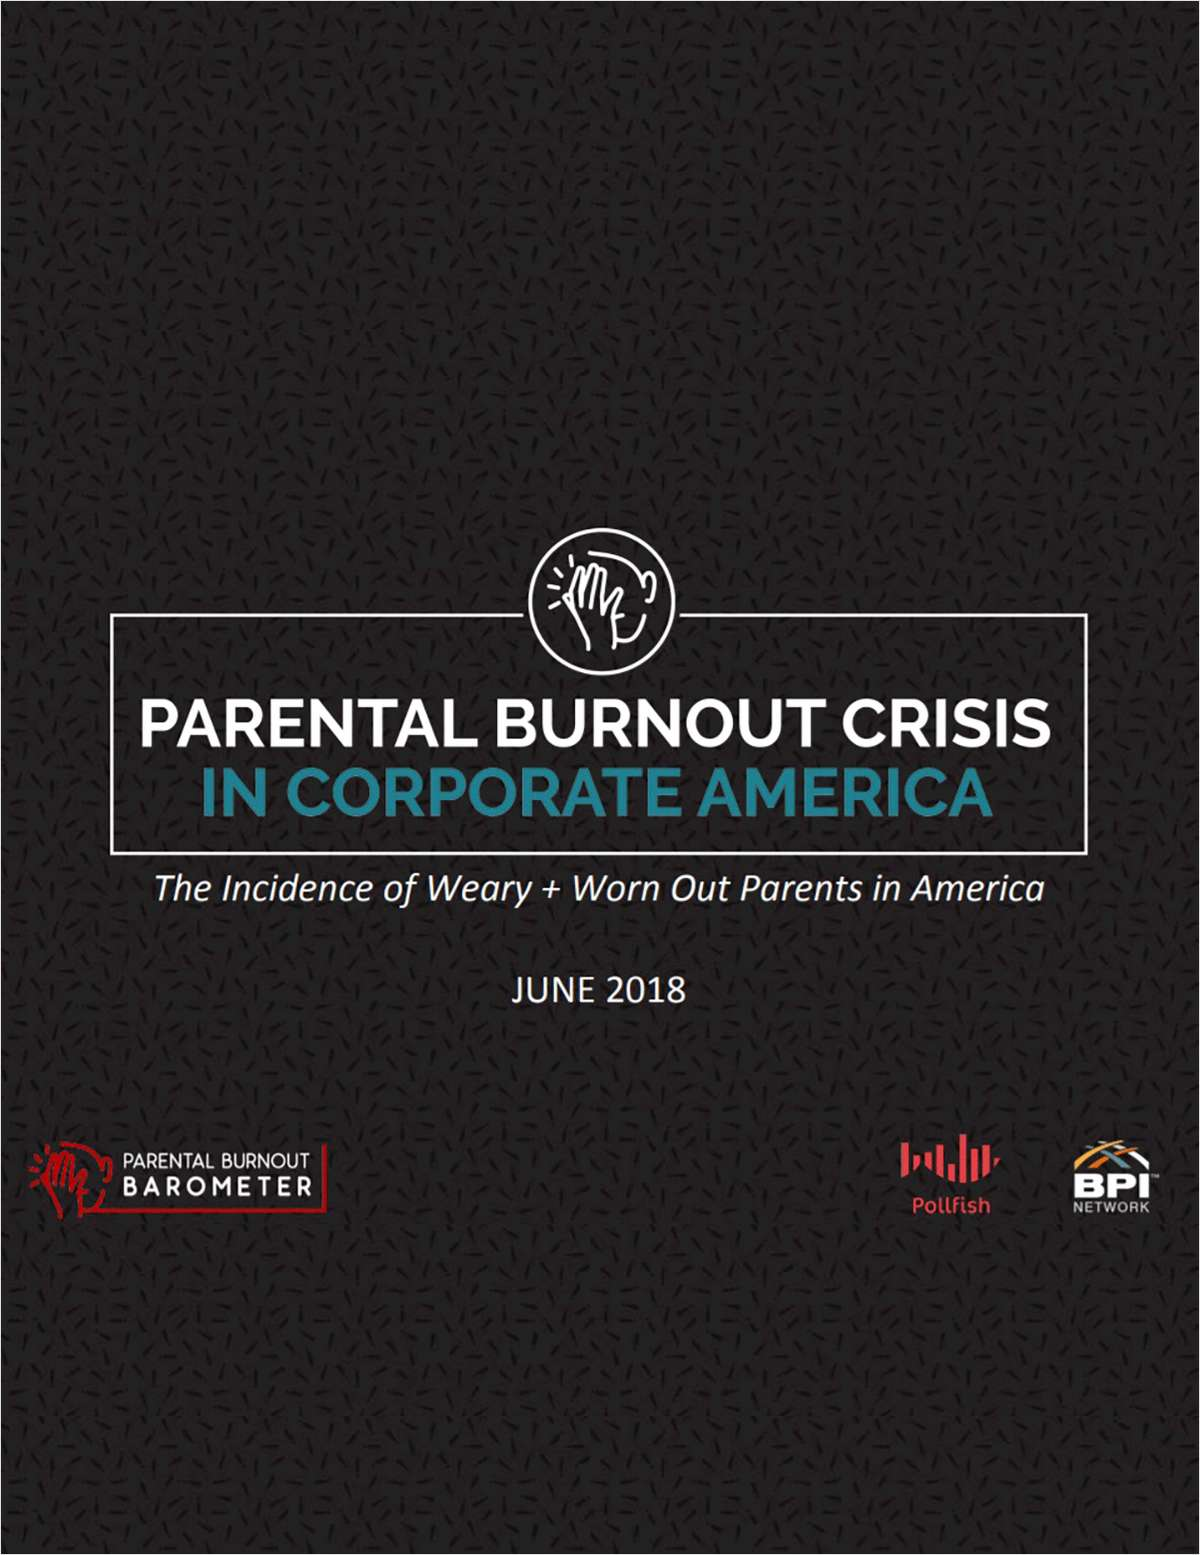 Parental Burnout Crisis in Corporate America